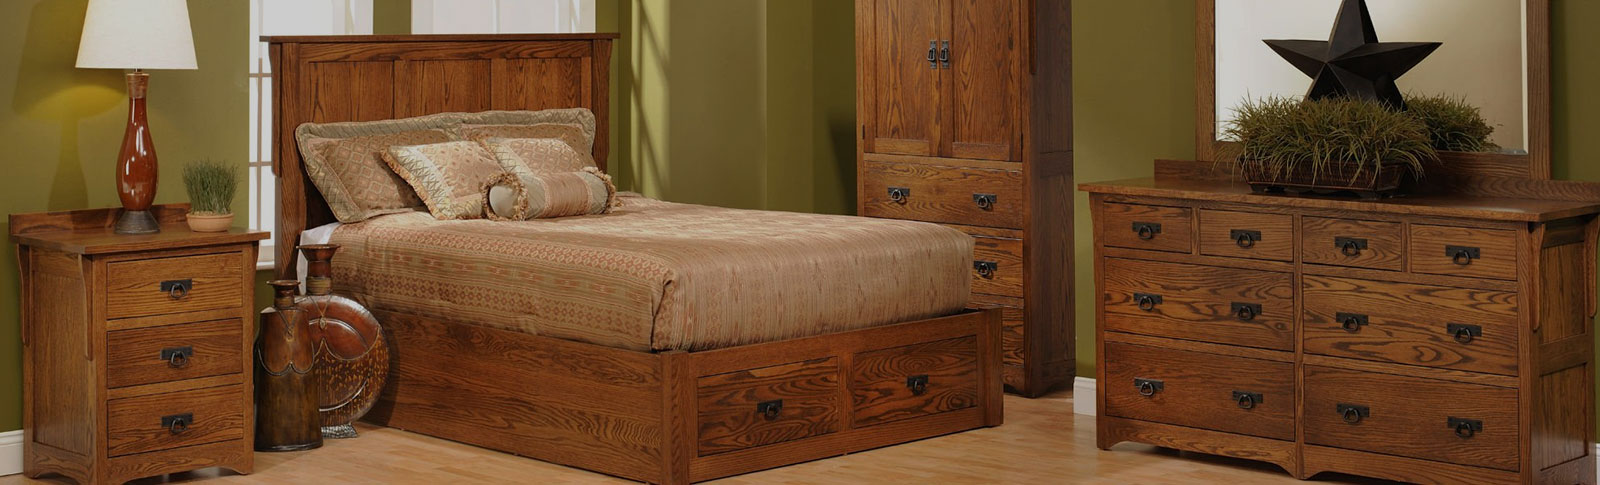 Adirondack Furniture Mission Bedrooms More